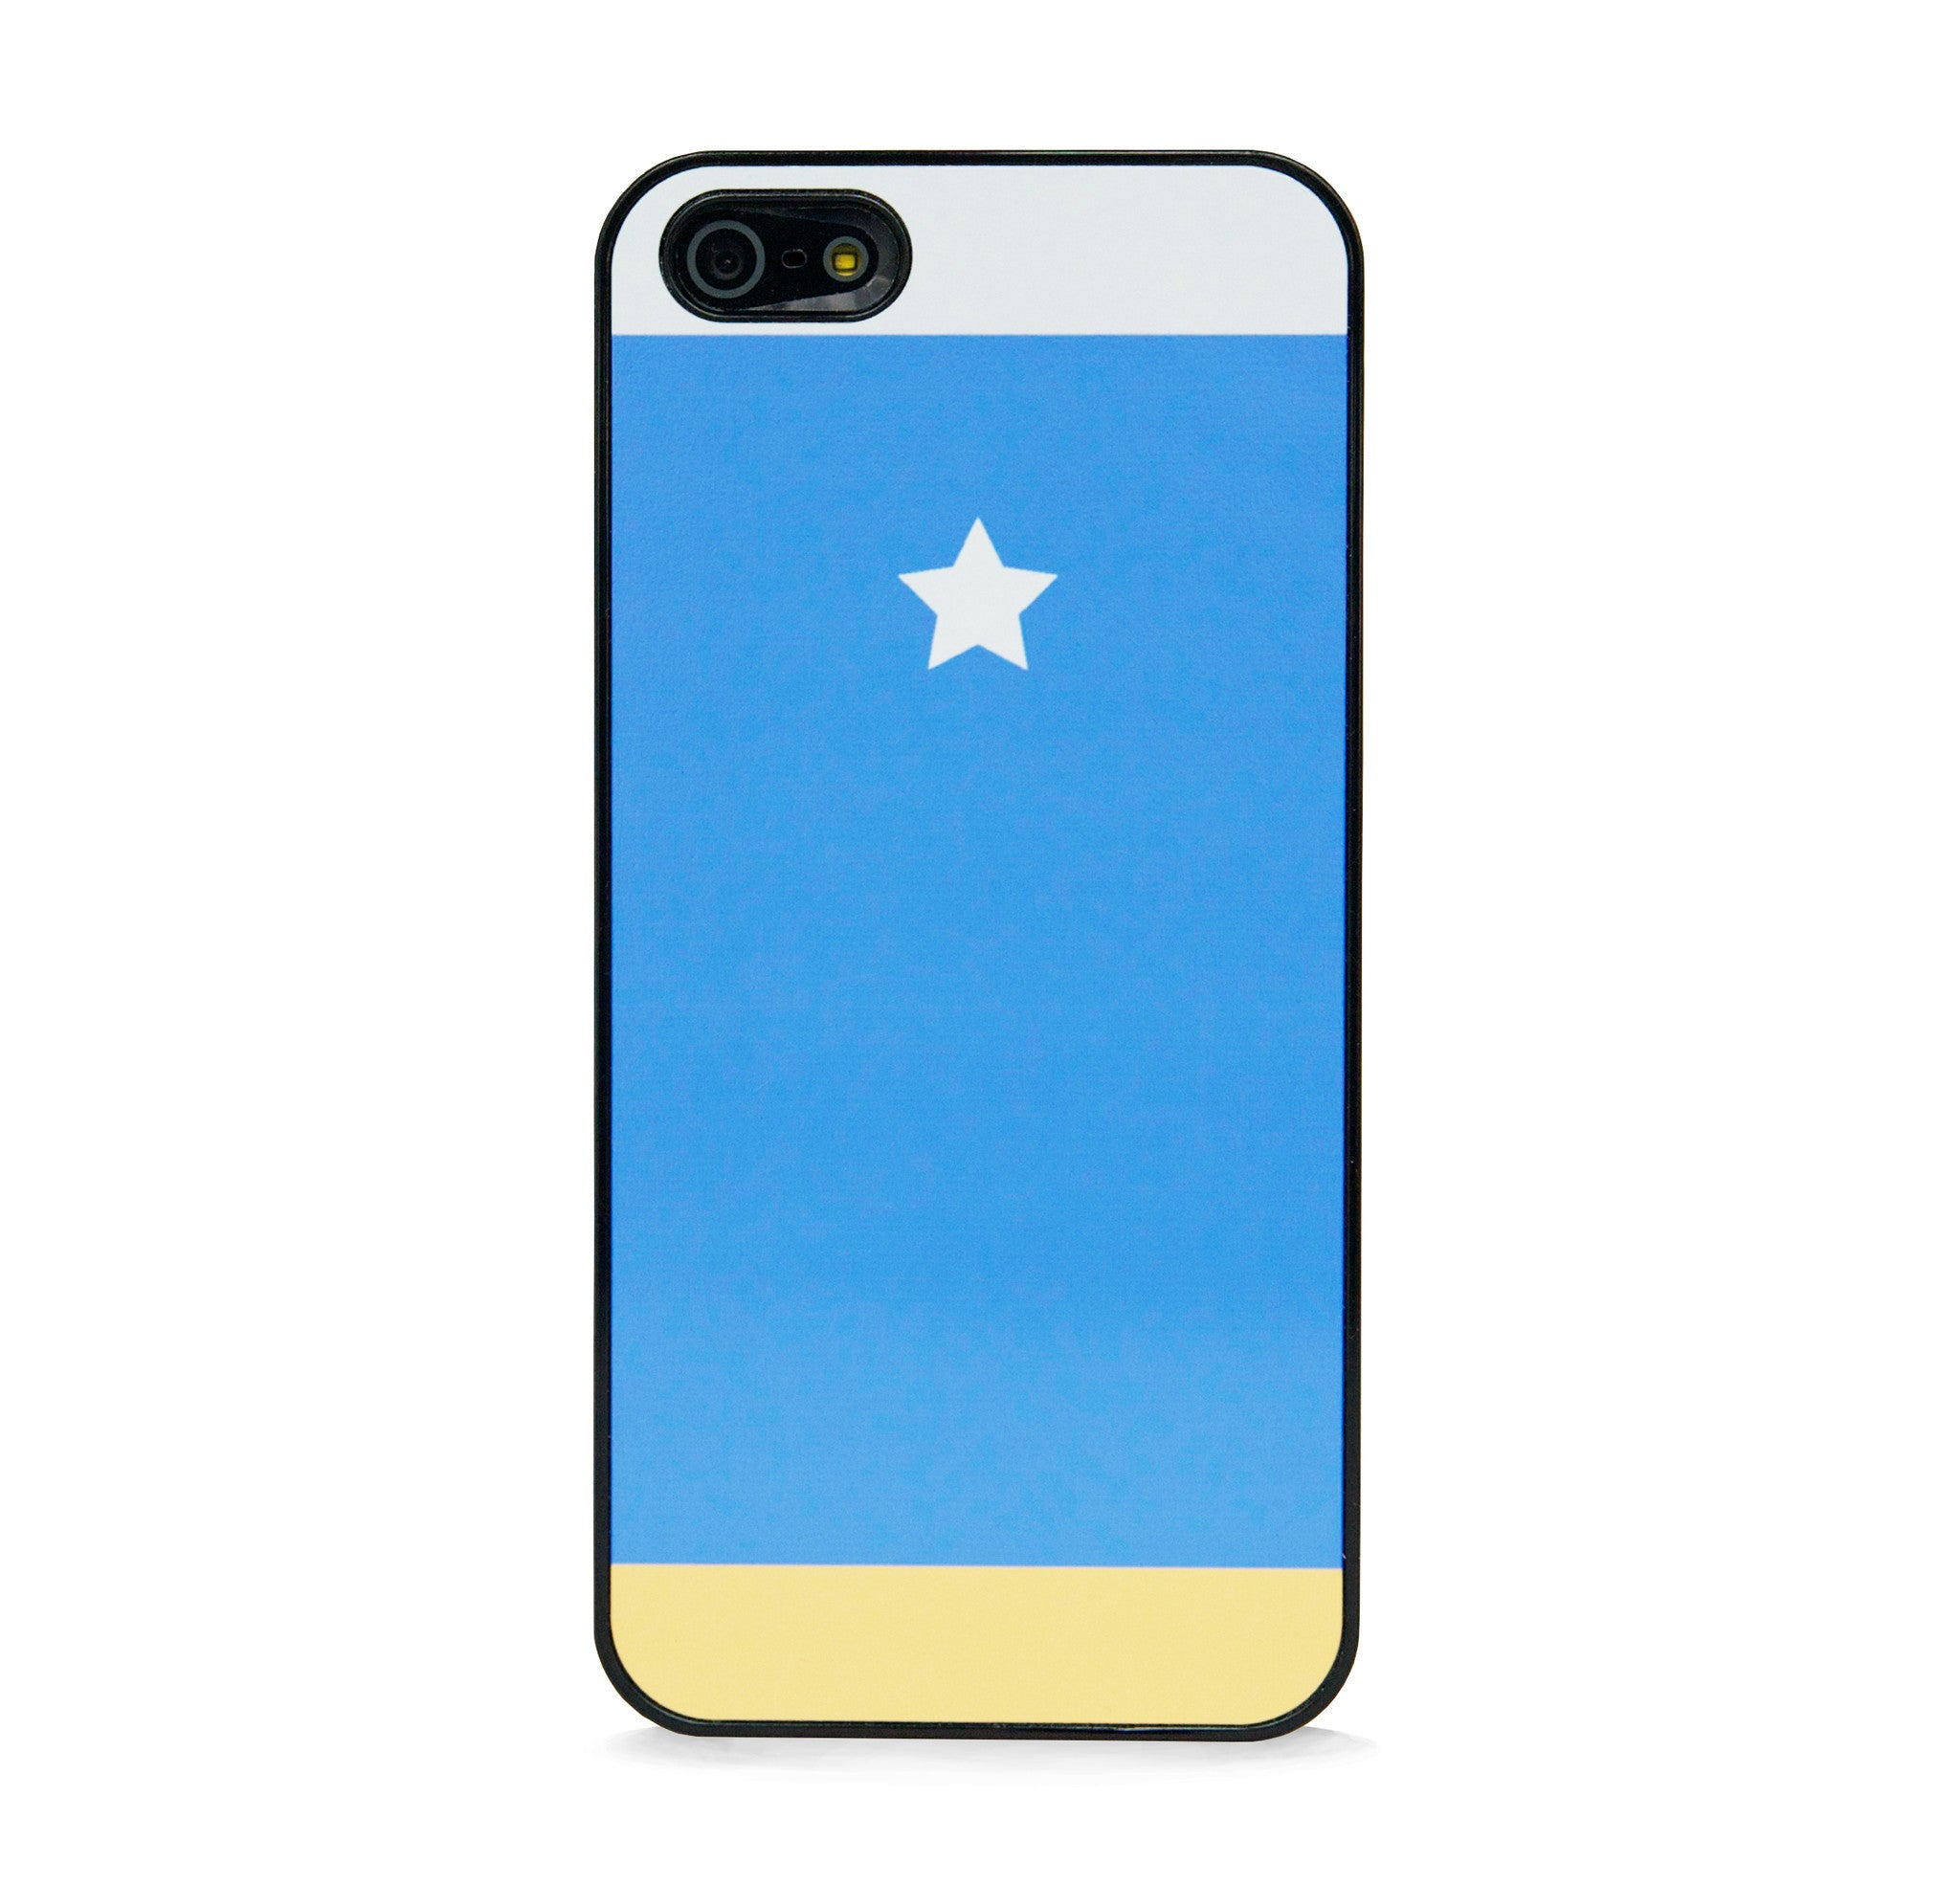 SYMBOL STAR COLOR BLOCK FOR IPHONE 5/5S, IPHONE SE